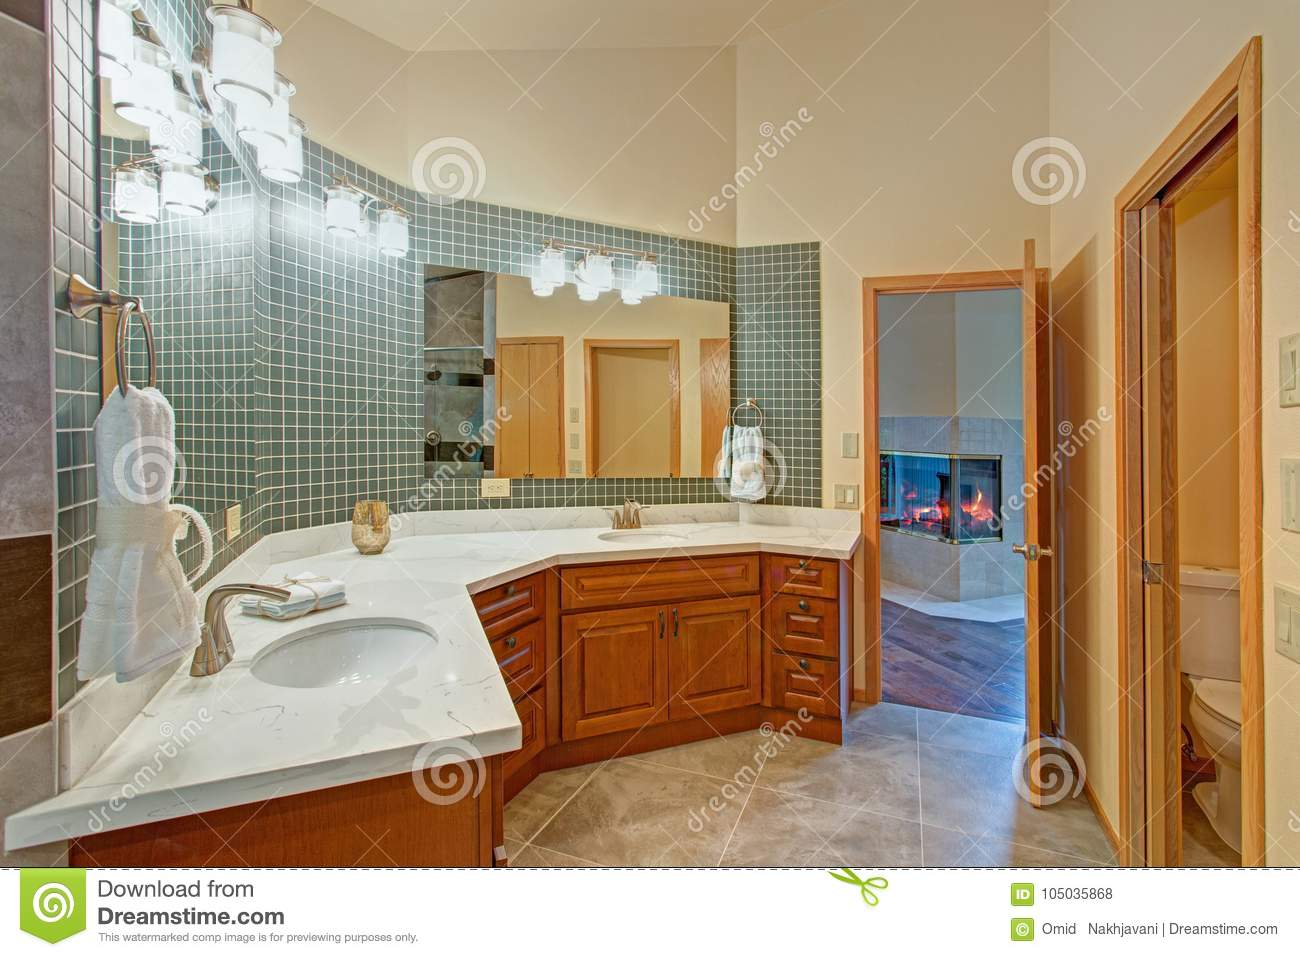 Stunning Bathroom With A Double Vanity With Marble Top